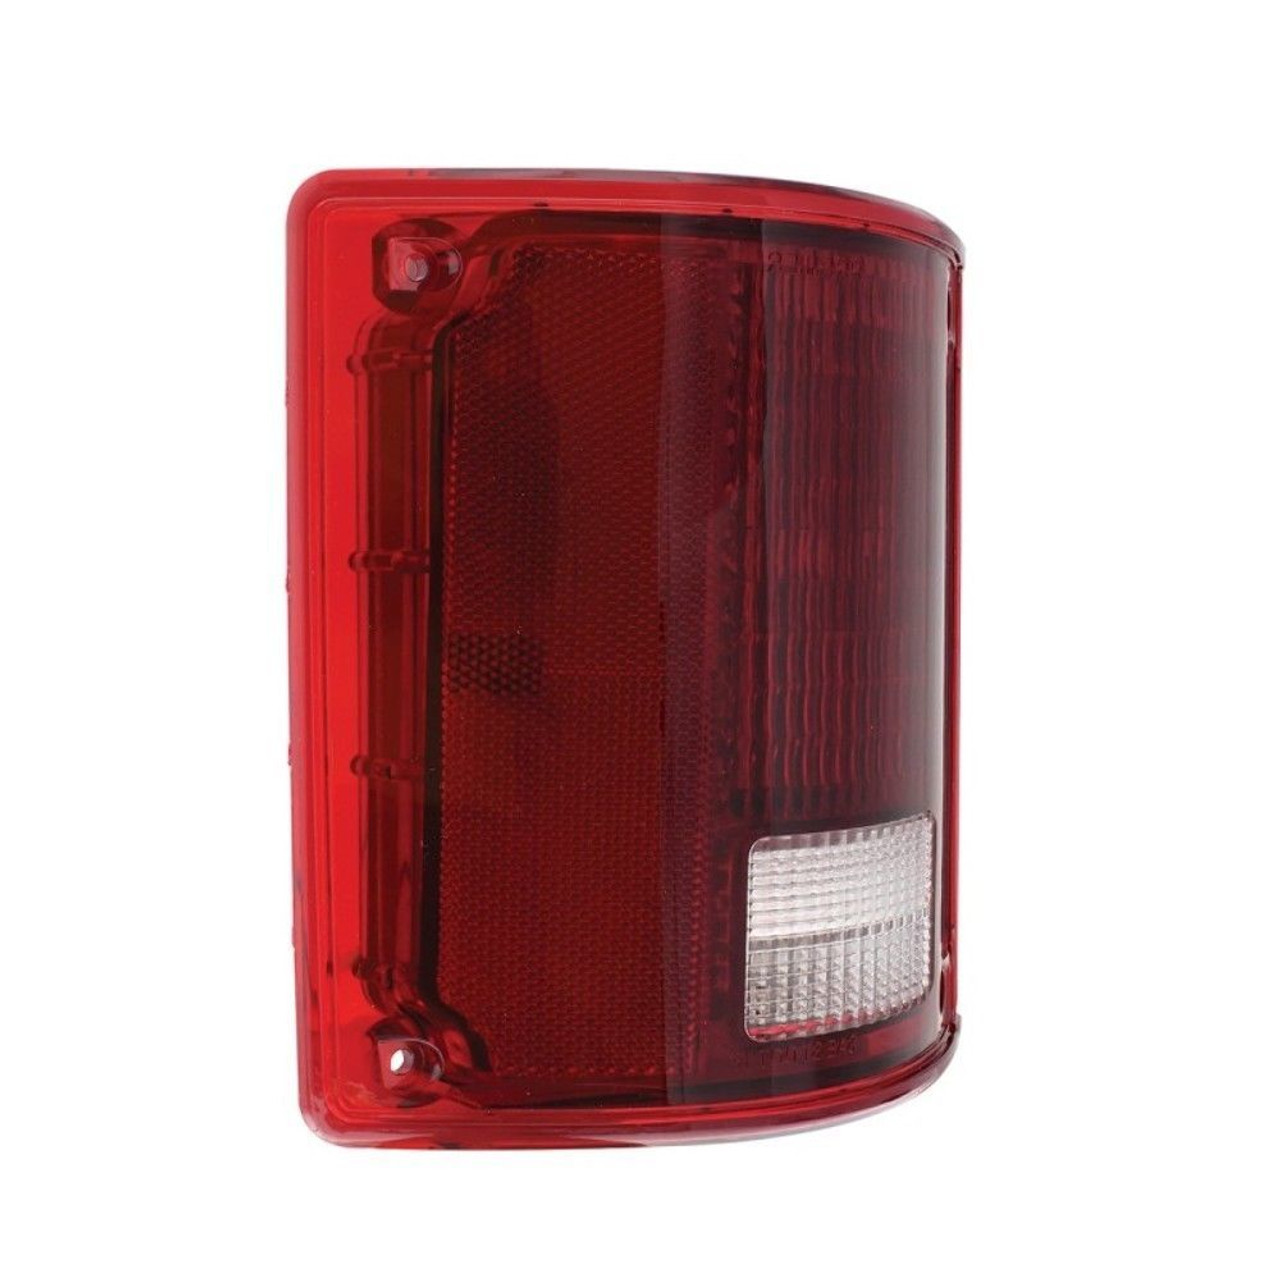 LED Sequential Tail Light W/O Trim, Driver Side, Fits Chevy/GMC Truck 1973-87